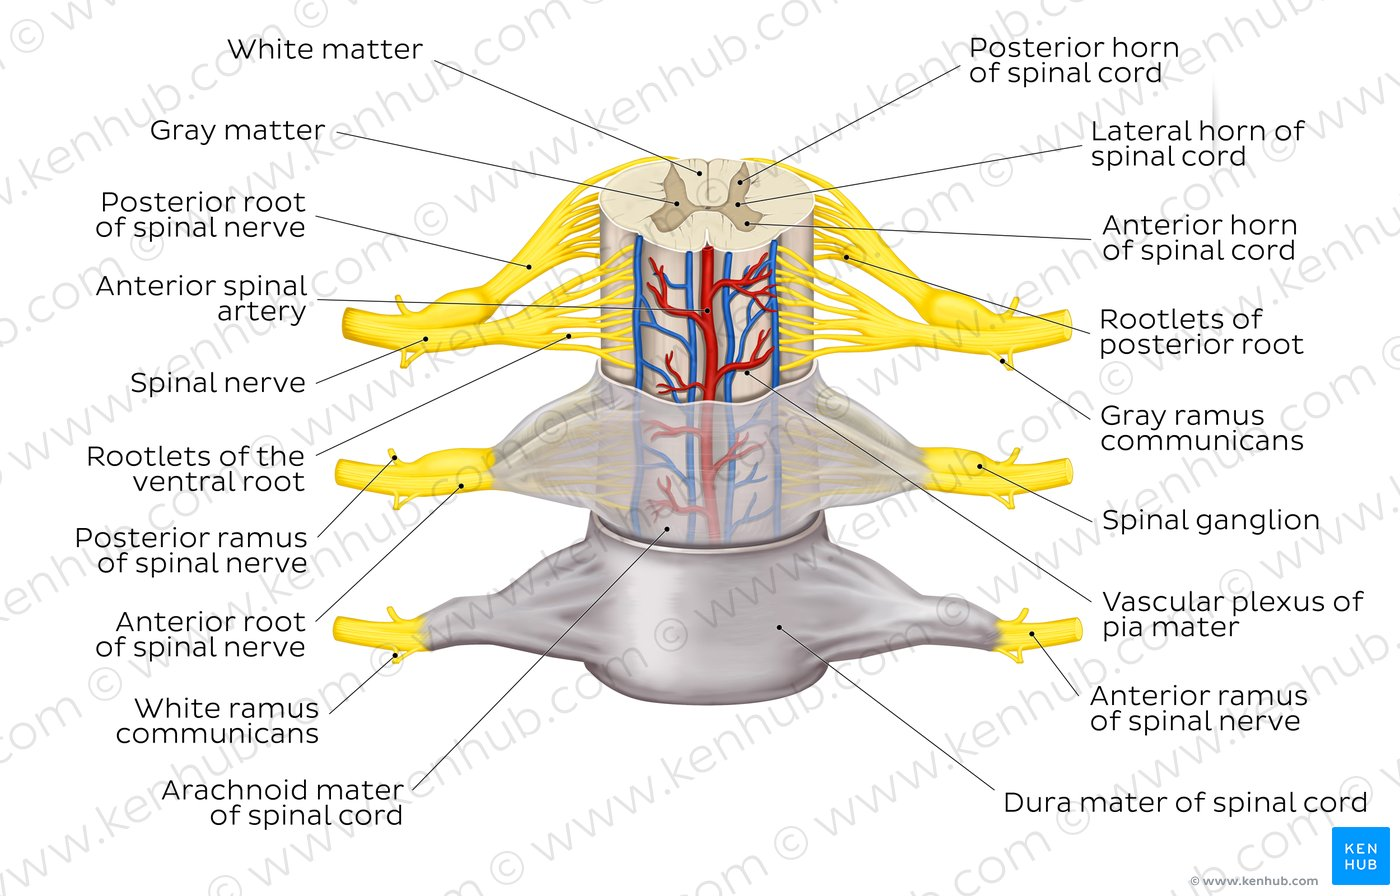 spinal cord and nerves diagram c5 corvette wiring pictures membranes nerve roots